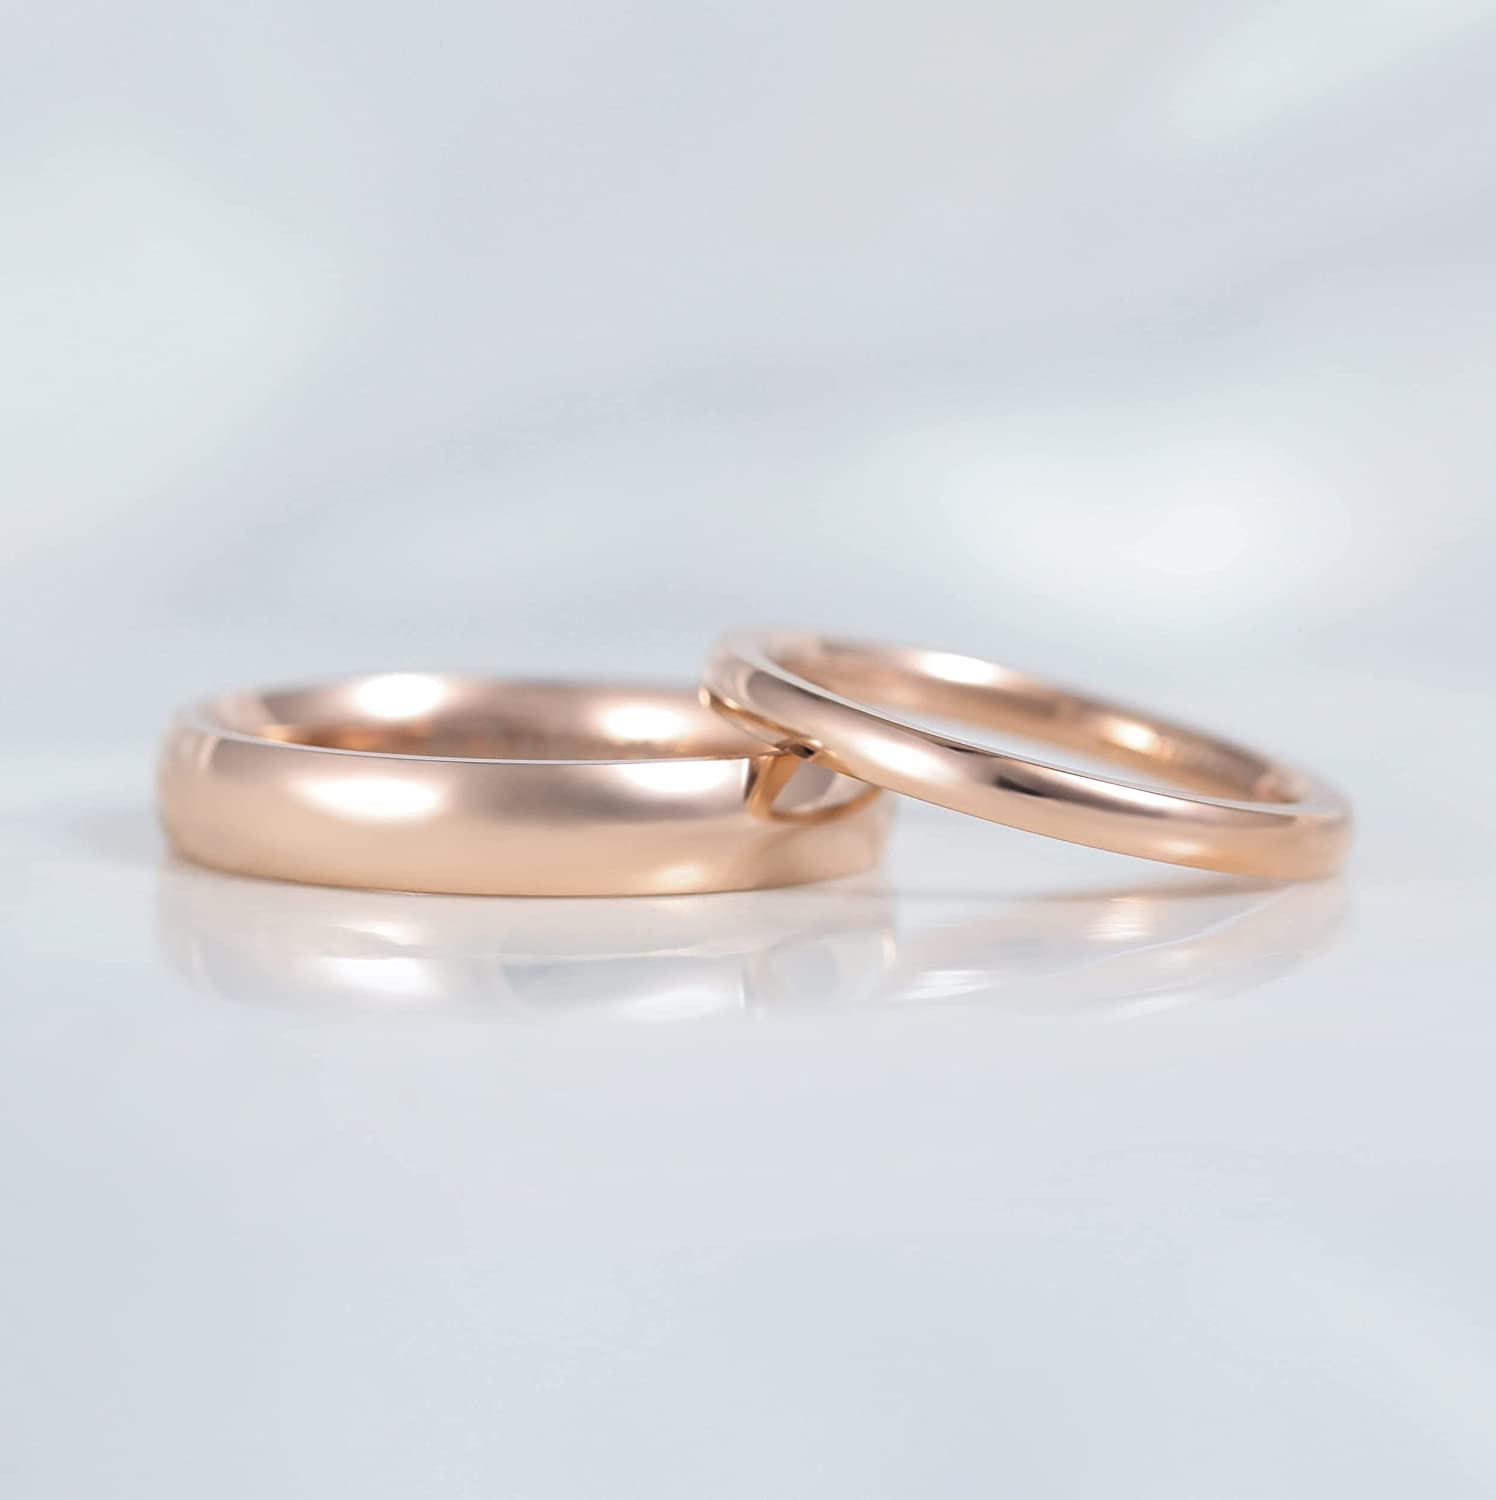 TIGRADE 2mm 4mm Titanium Ring Rose Gold Dome High Polished Wedding Band Comfort Fit Size 3-13.5